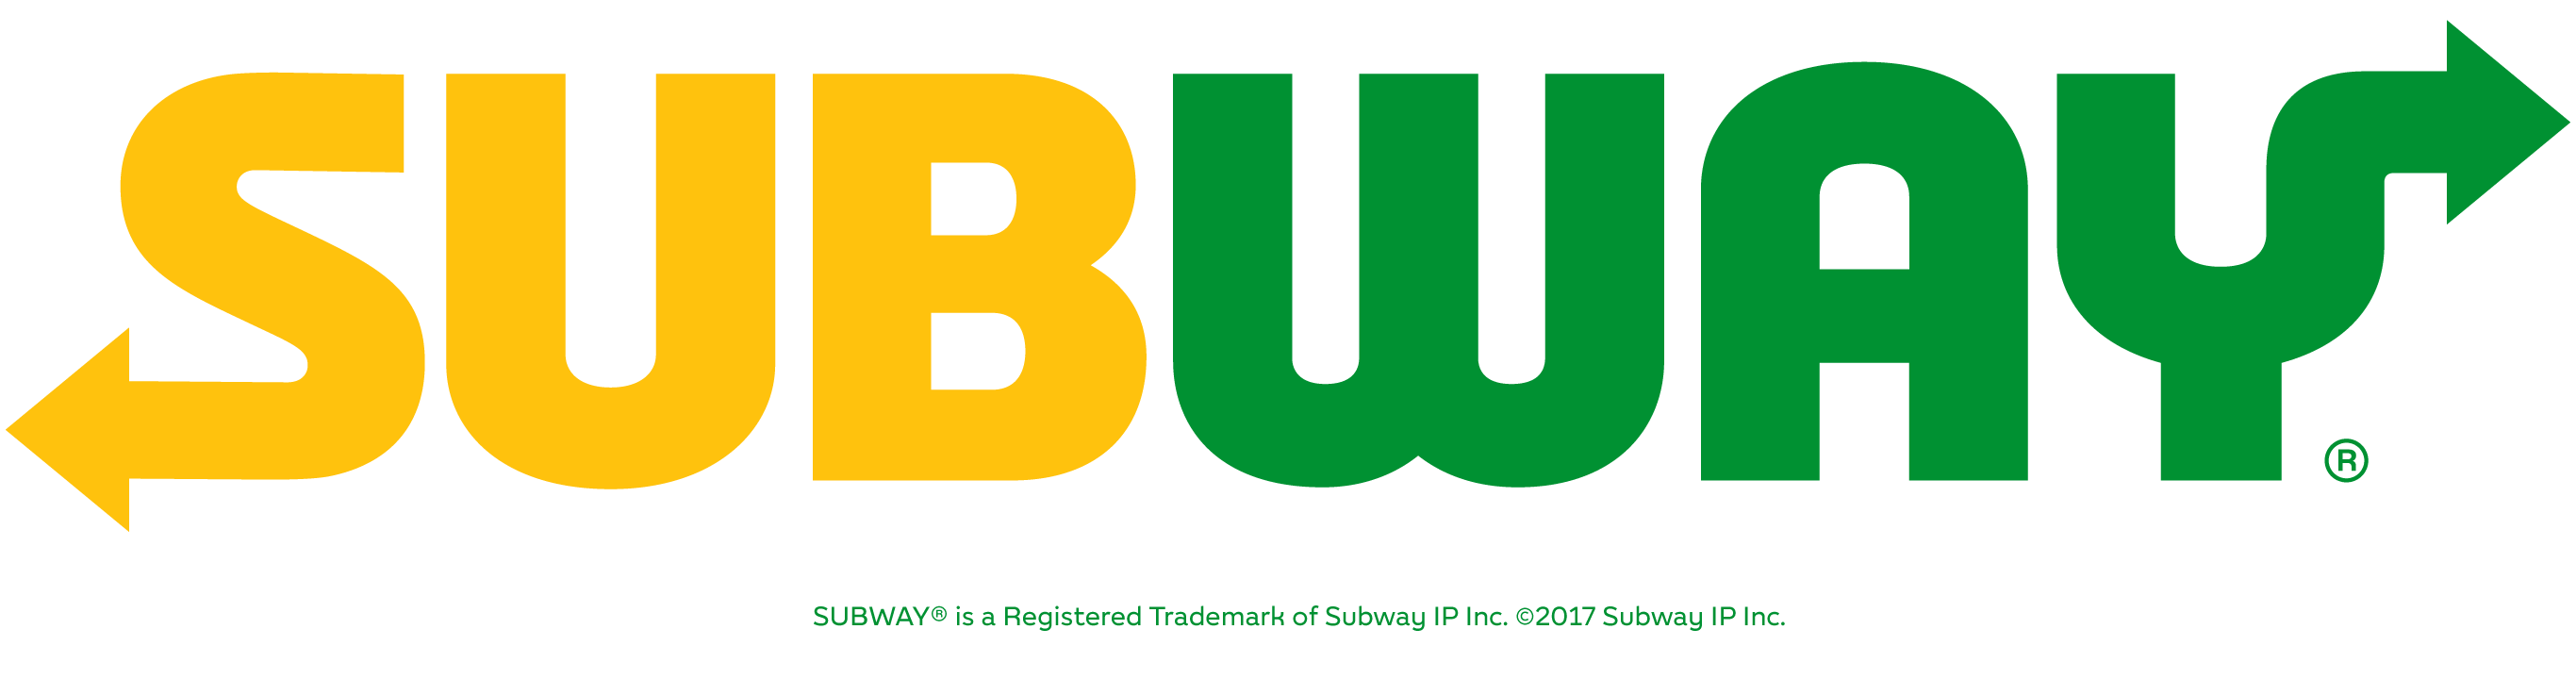 Subway Logo YG Legal - ENG (1)